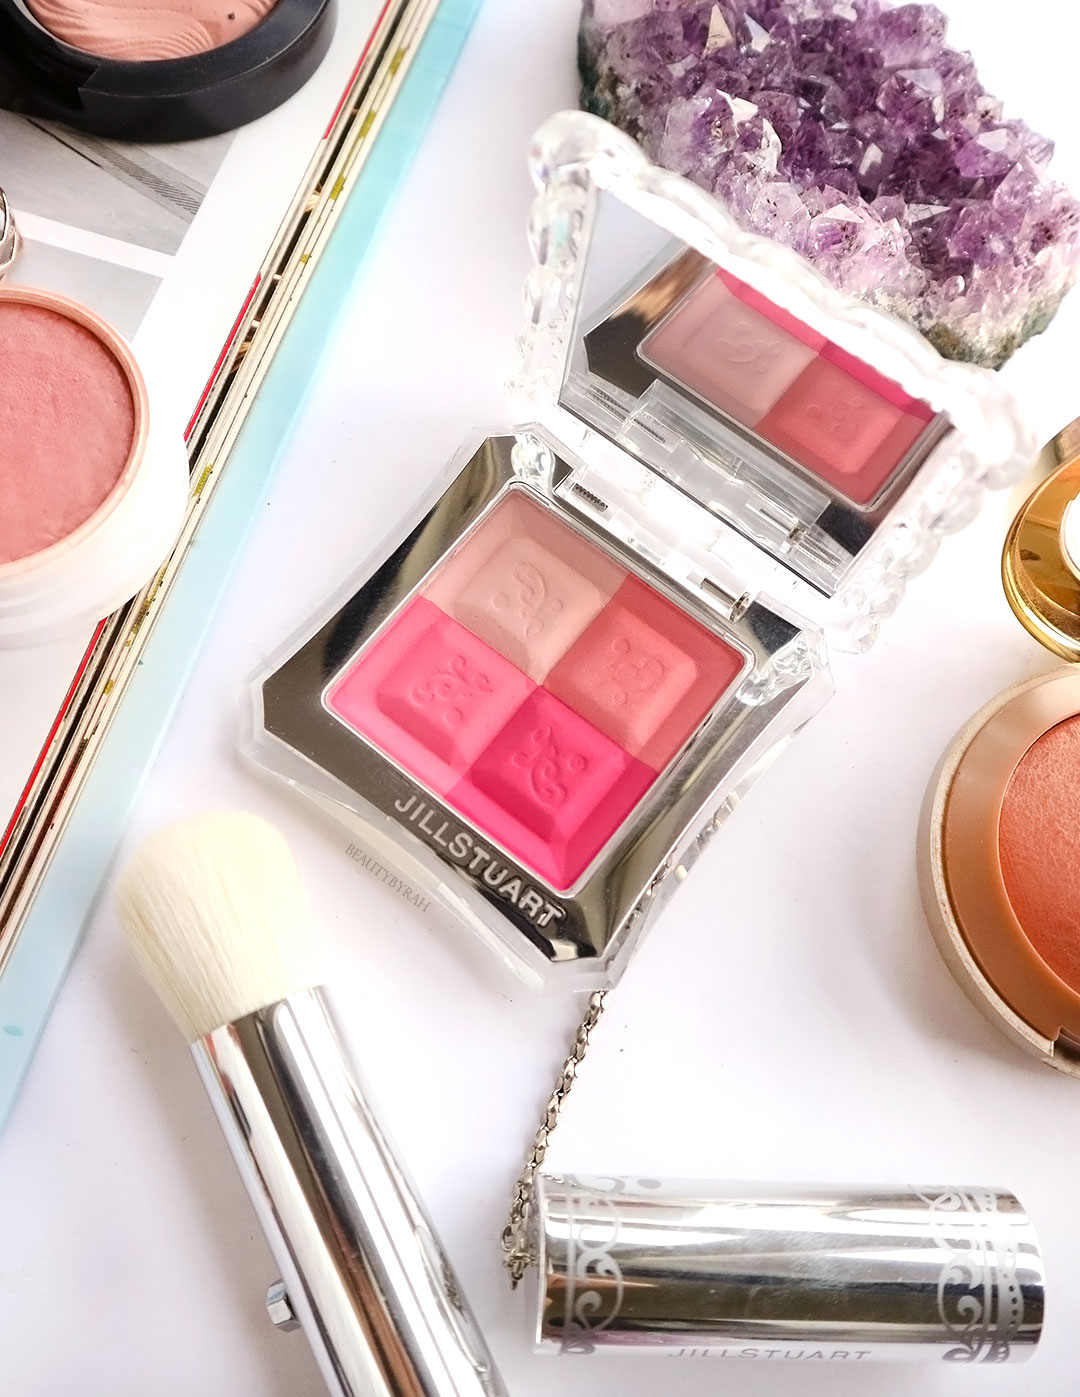 Jill Stuart Mix Blush Compact Blush in Primrose review